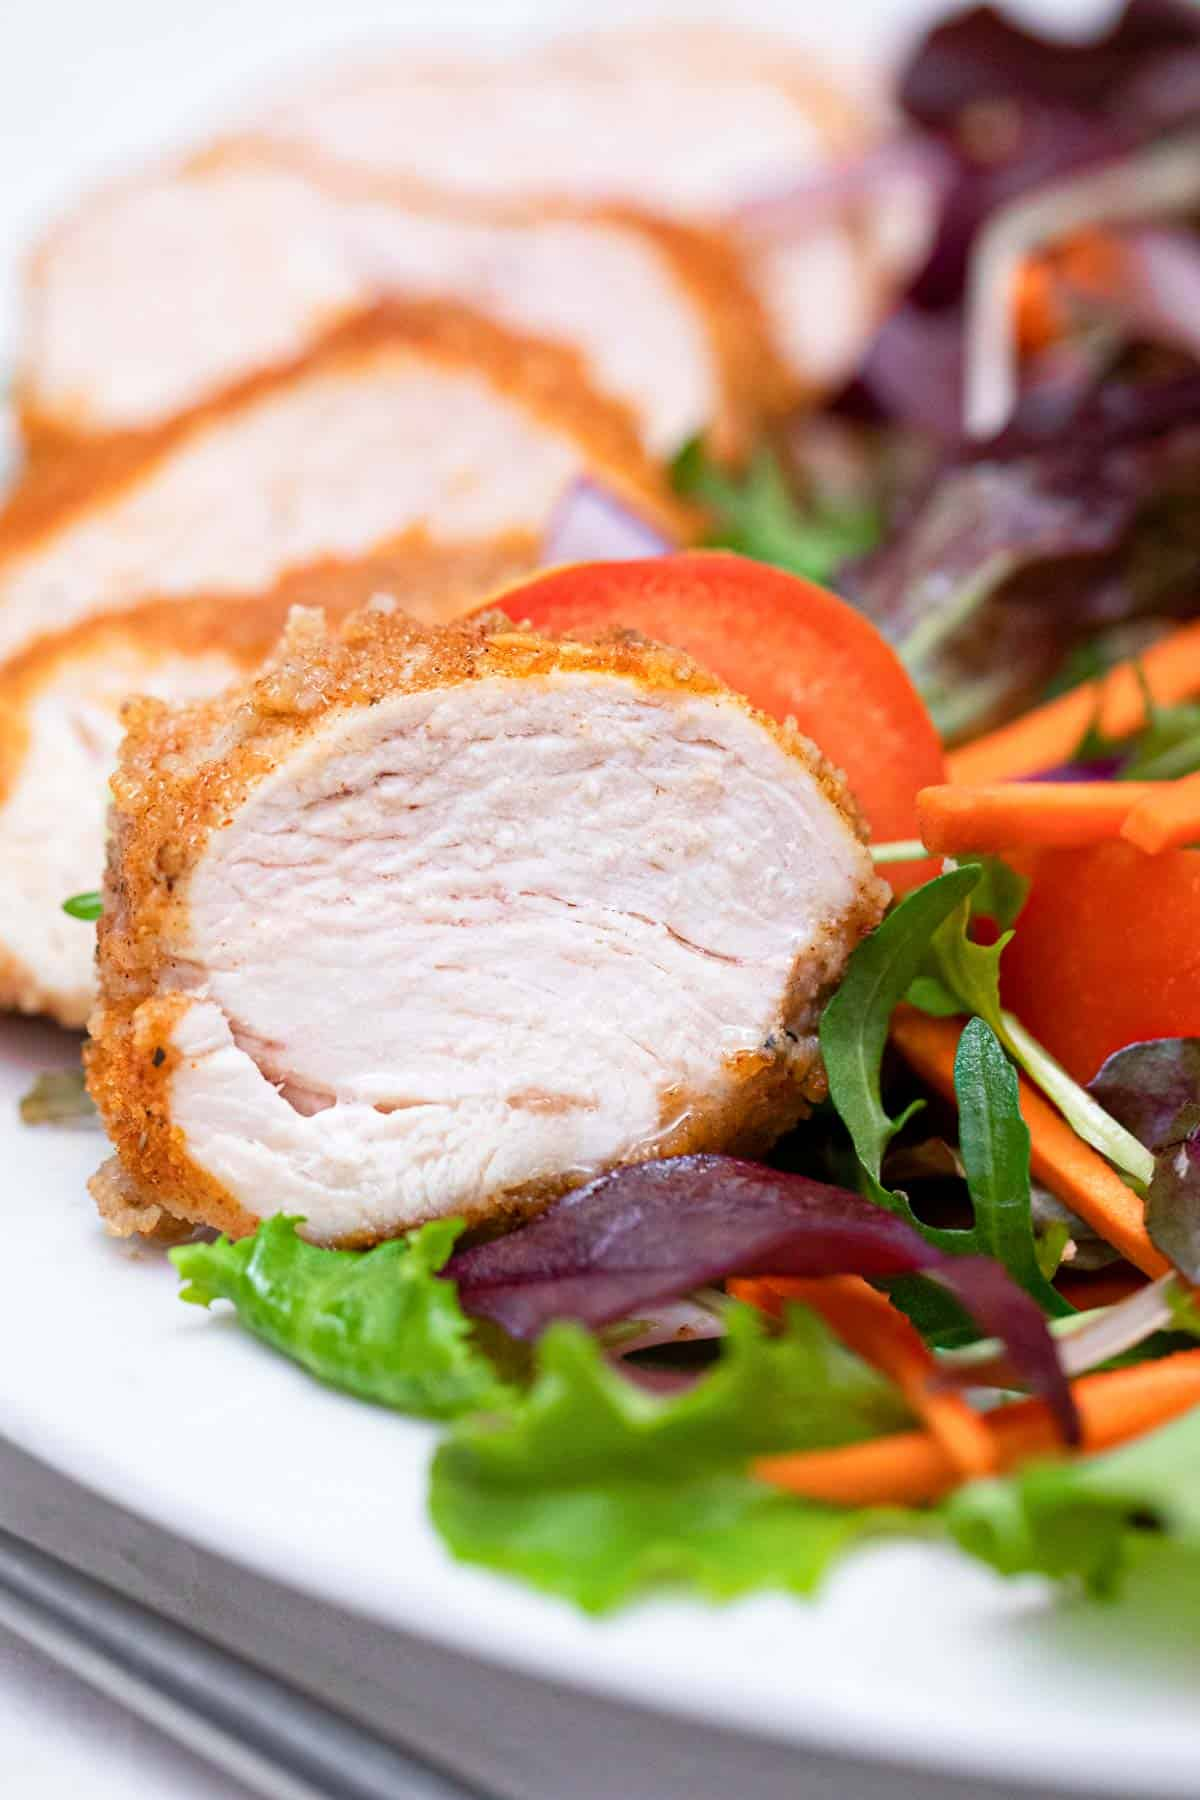 the finished air fryer chicken breast sliced and served on a plate with a green salad